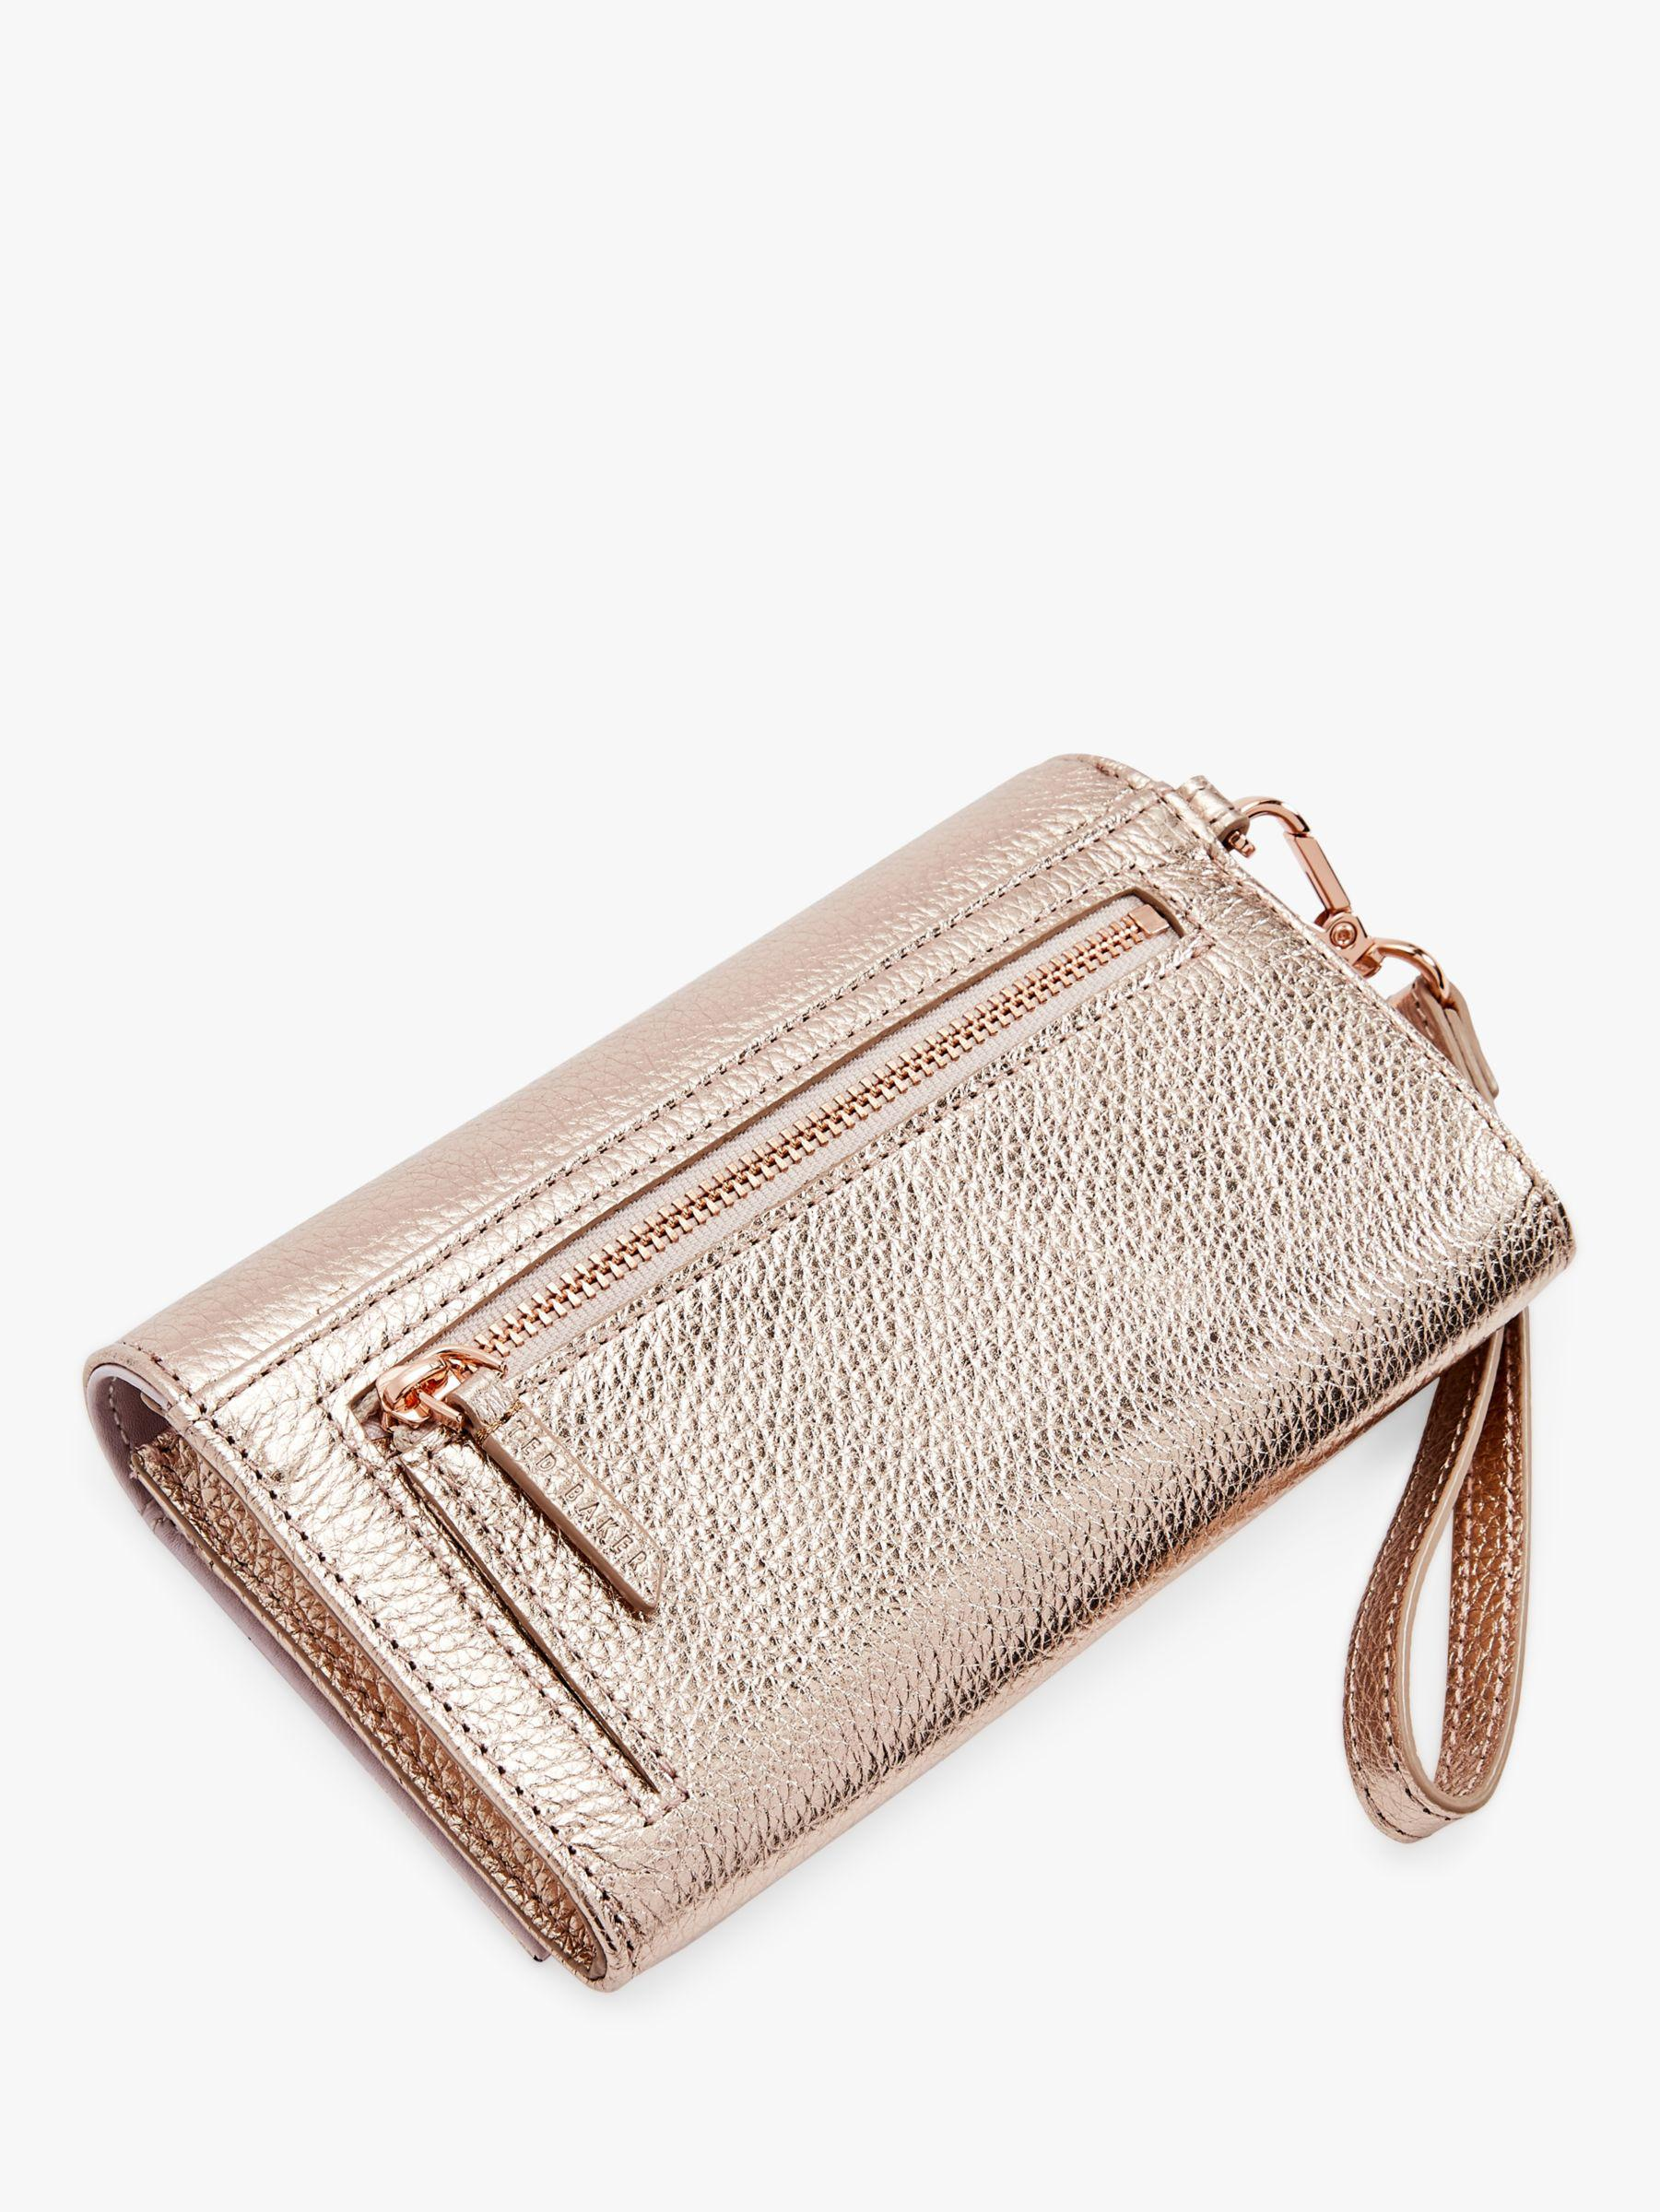 40cb2ed6f2163 Ted Baker Holli Leather Wristlet Purse in Pink - Lyst